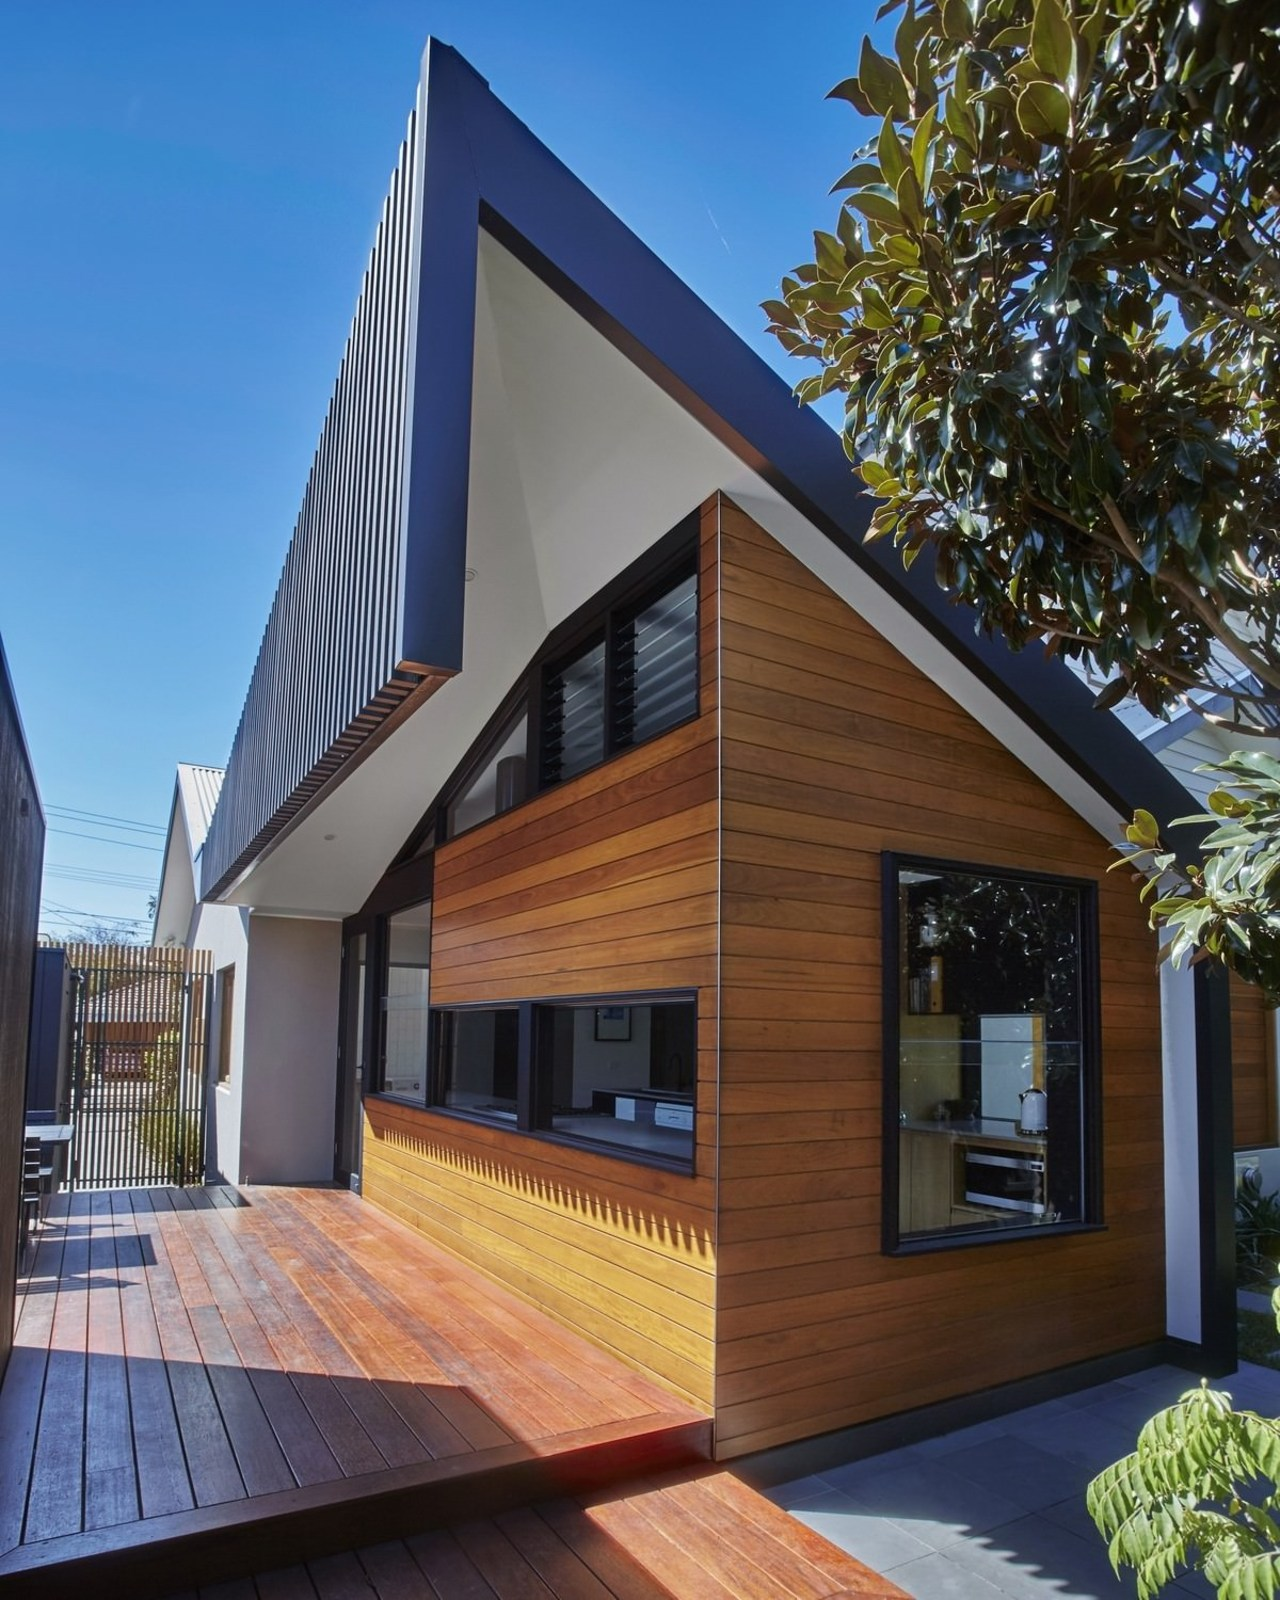 It's a clever take on the typical gable architecture, building, elevation, facade, home, house, property, real estate, residential area, siding, window, brown